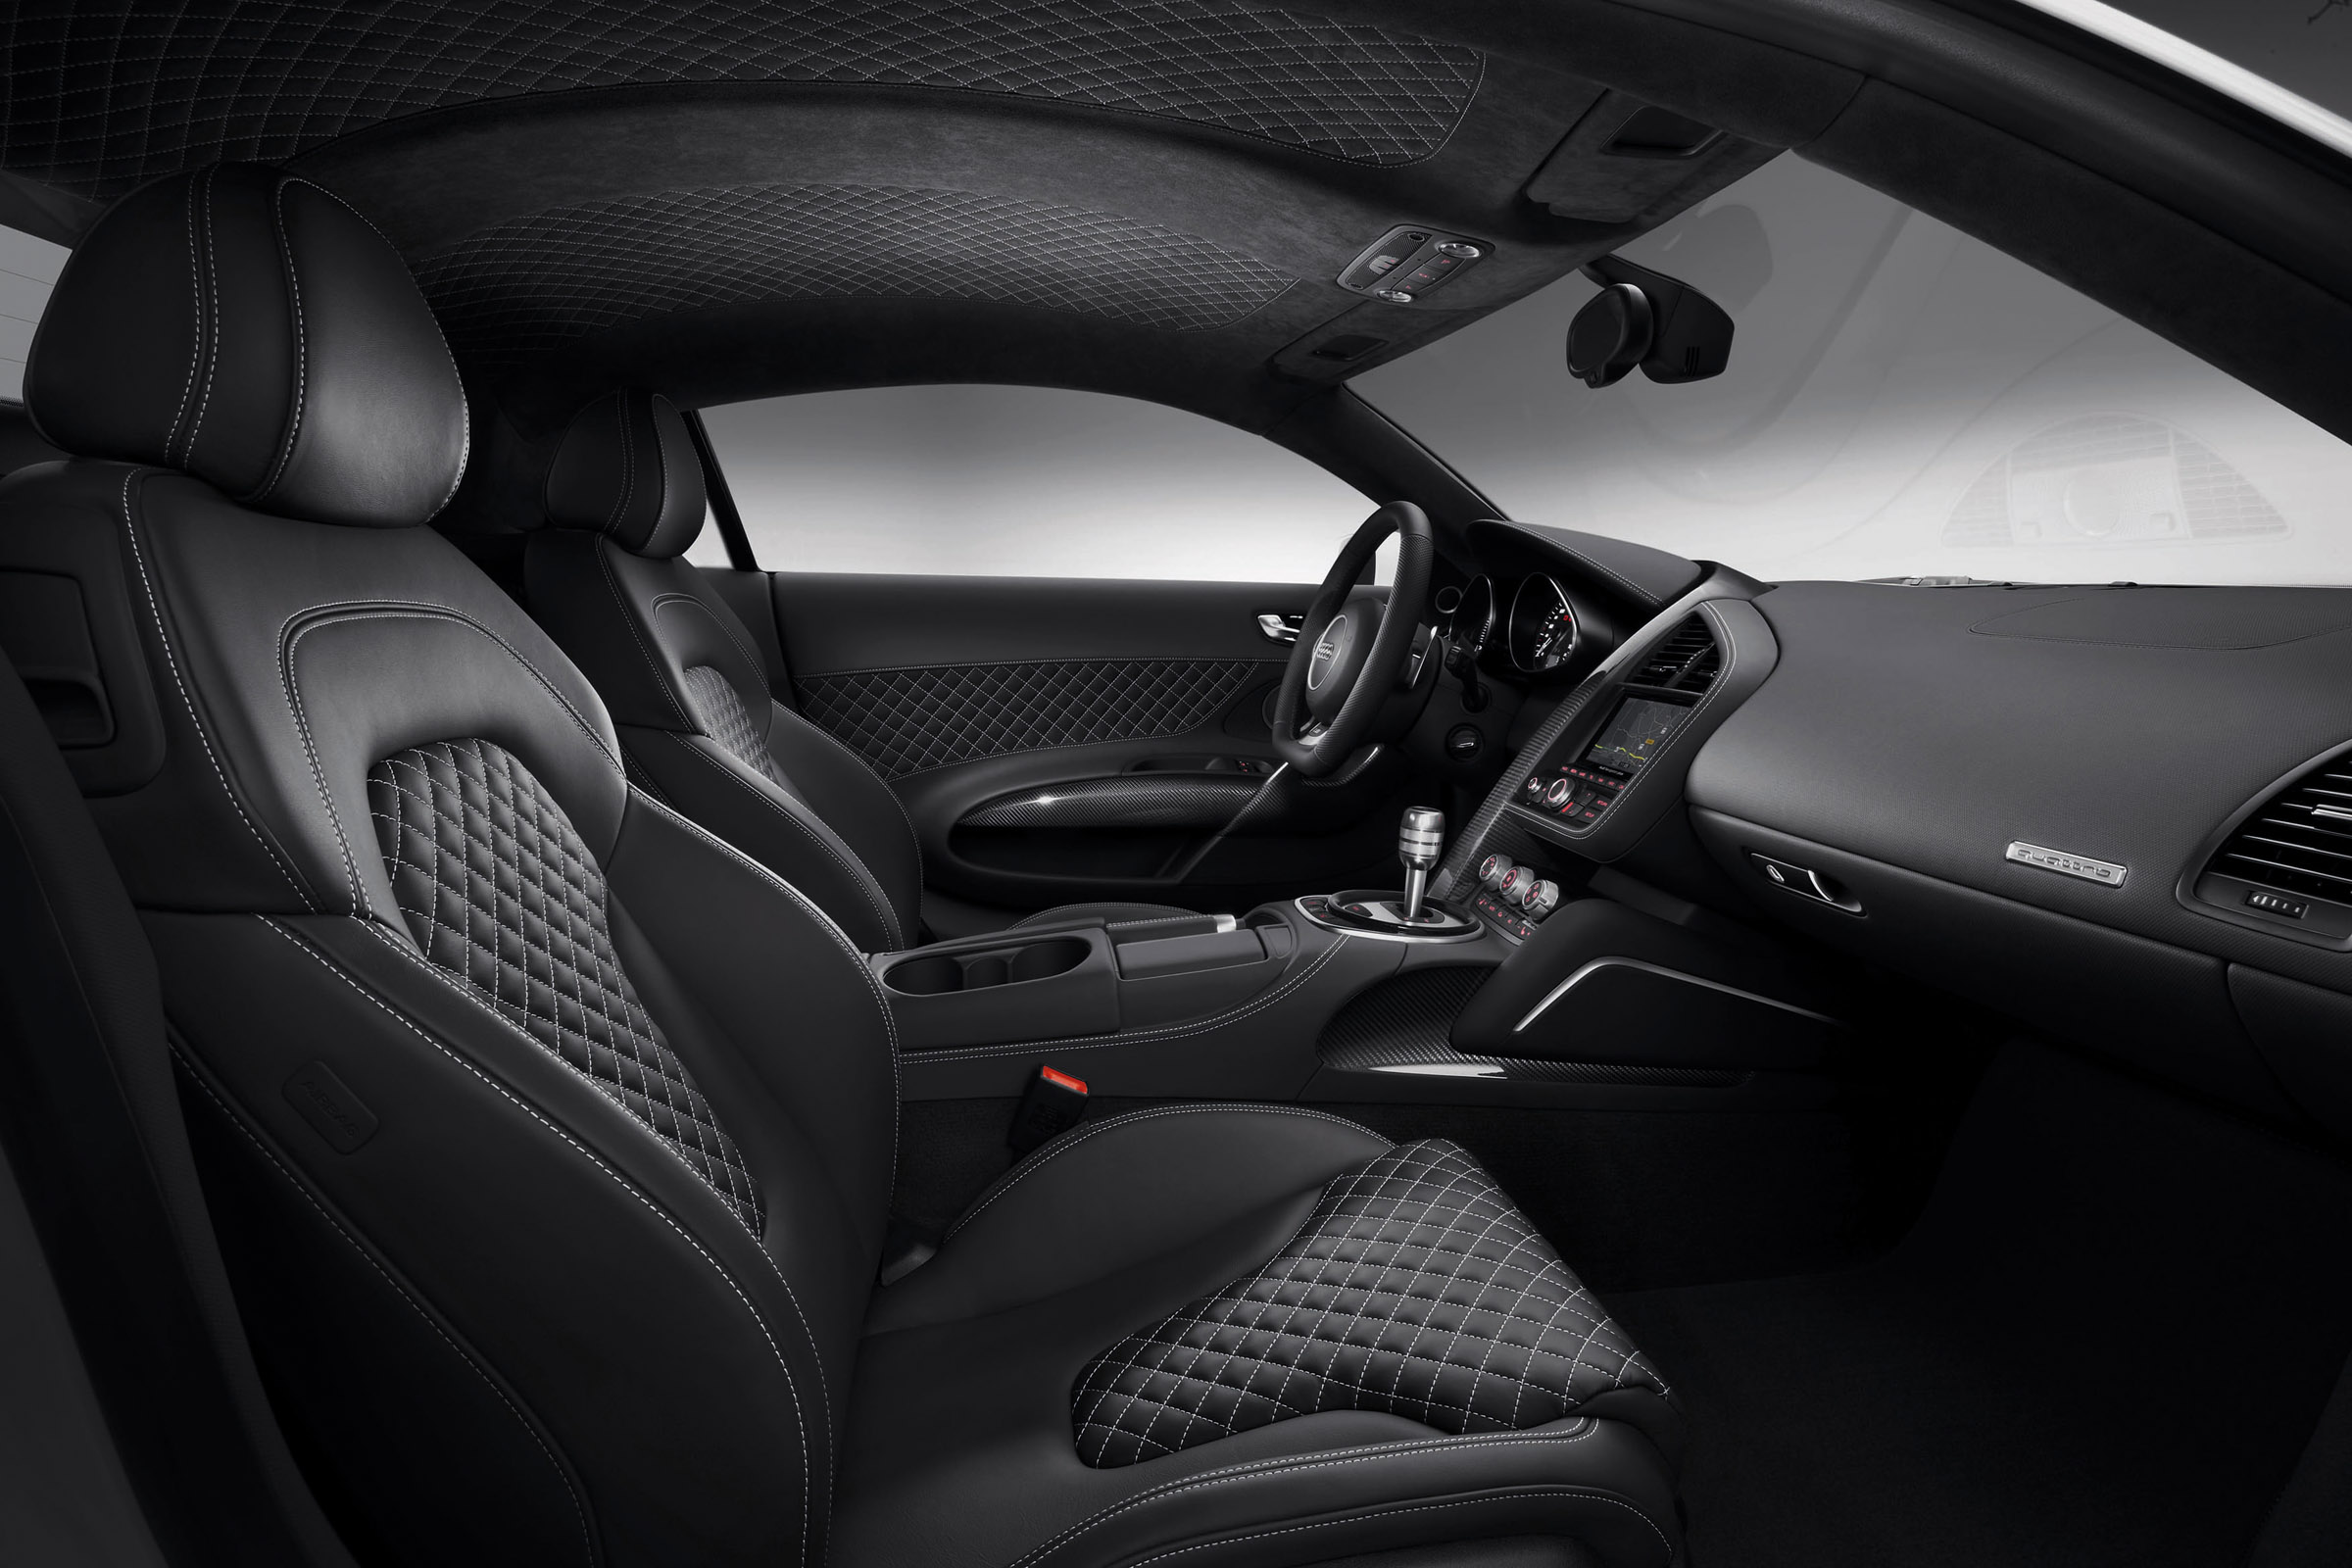 2013 Grey Audi R8 V10 optional bucket seats